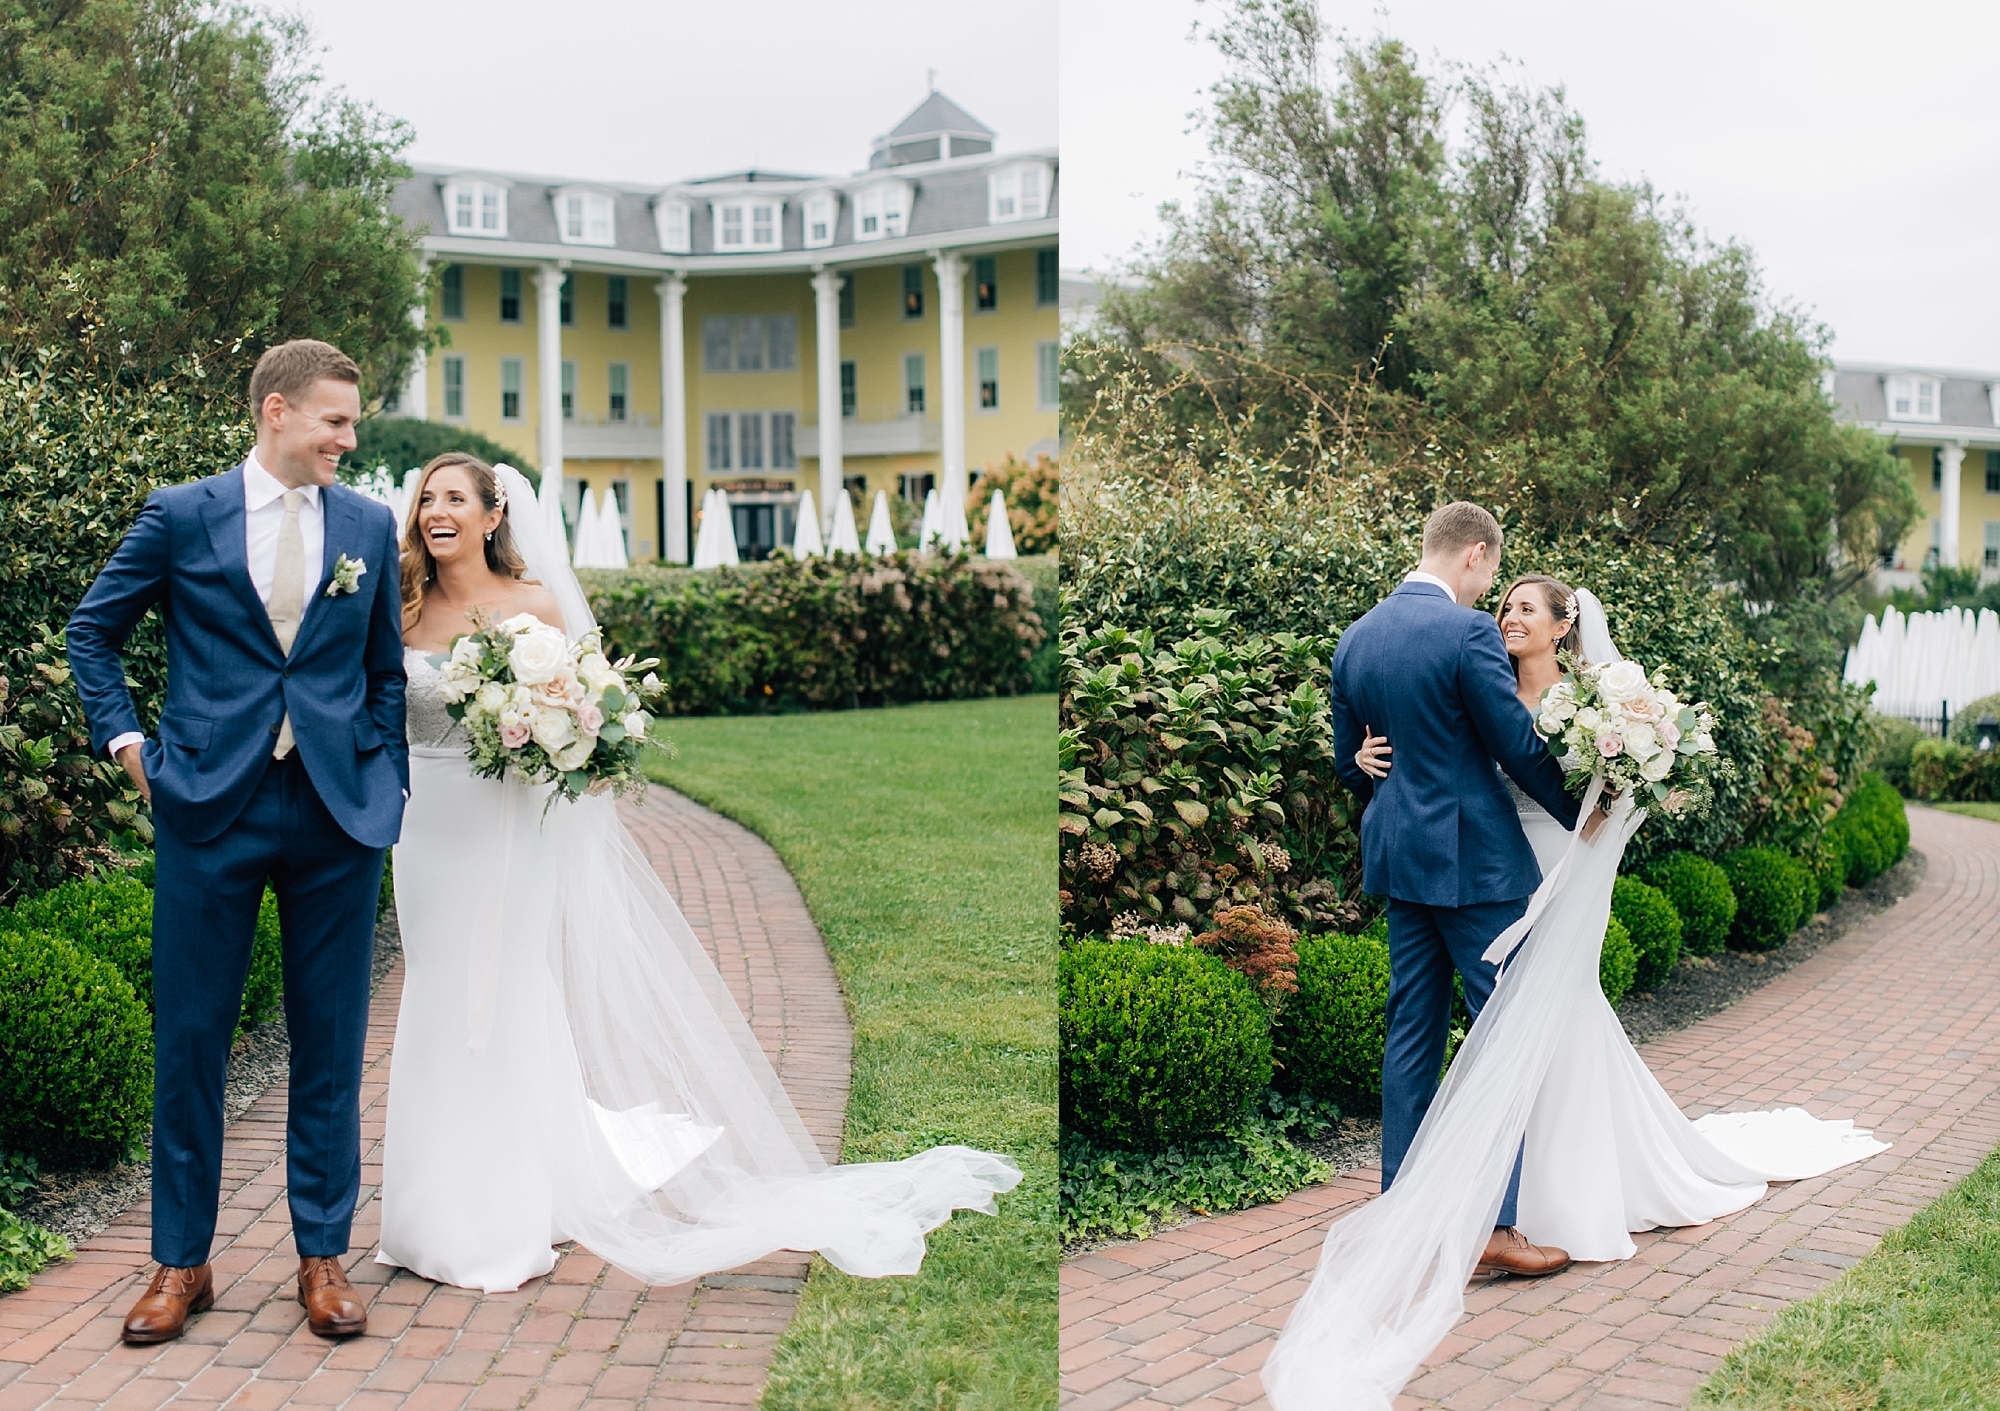 Intimate and Joyful Wedding Photography in Cape May NJ by Magdalena Studios 0011 4